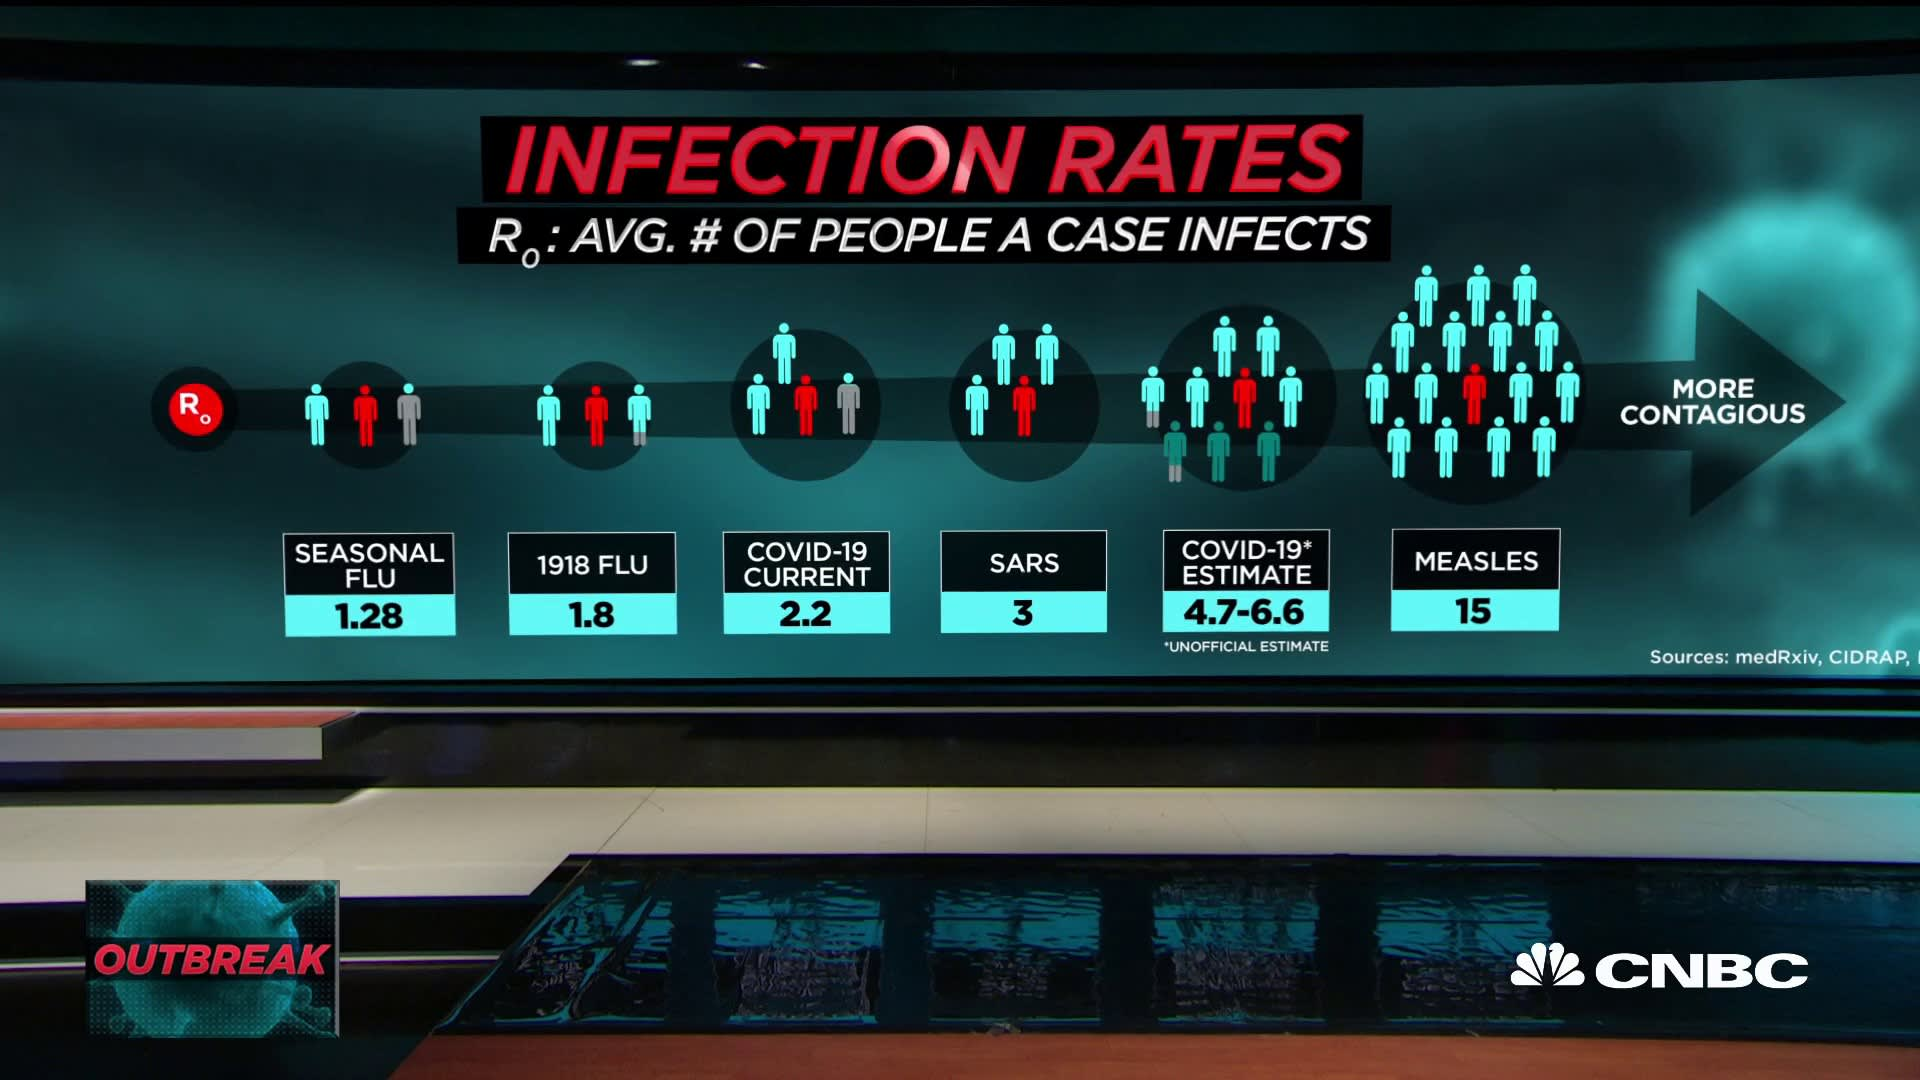 Just how contagious is the coronavirus